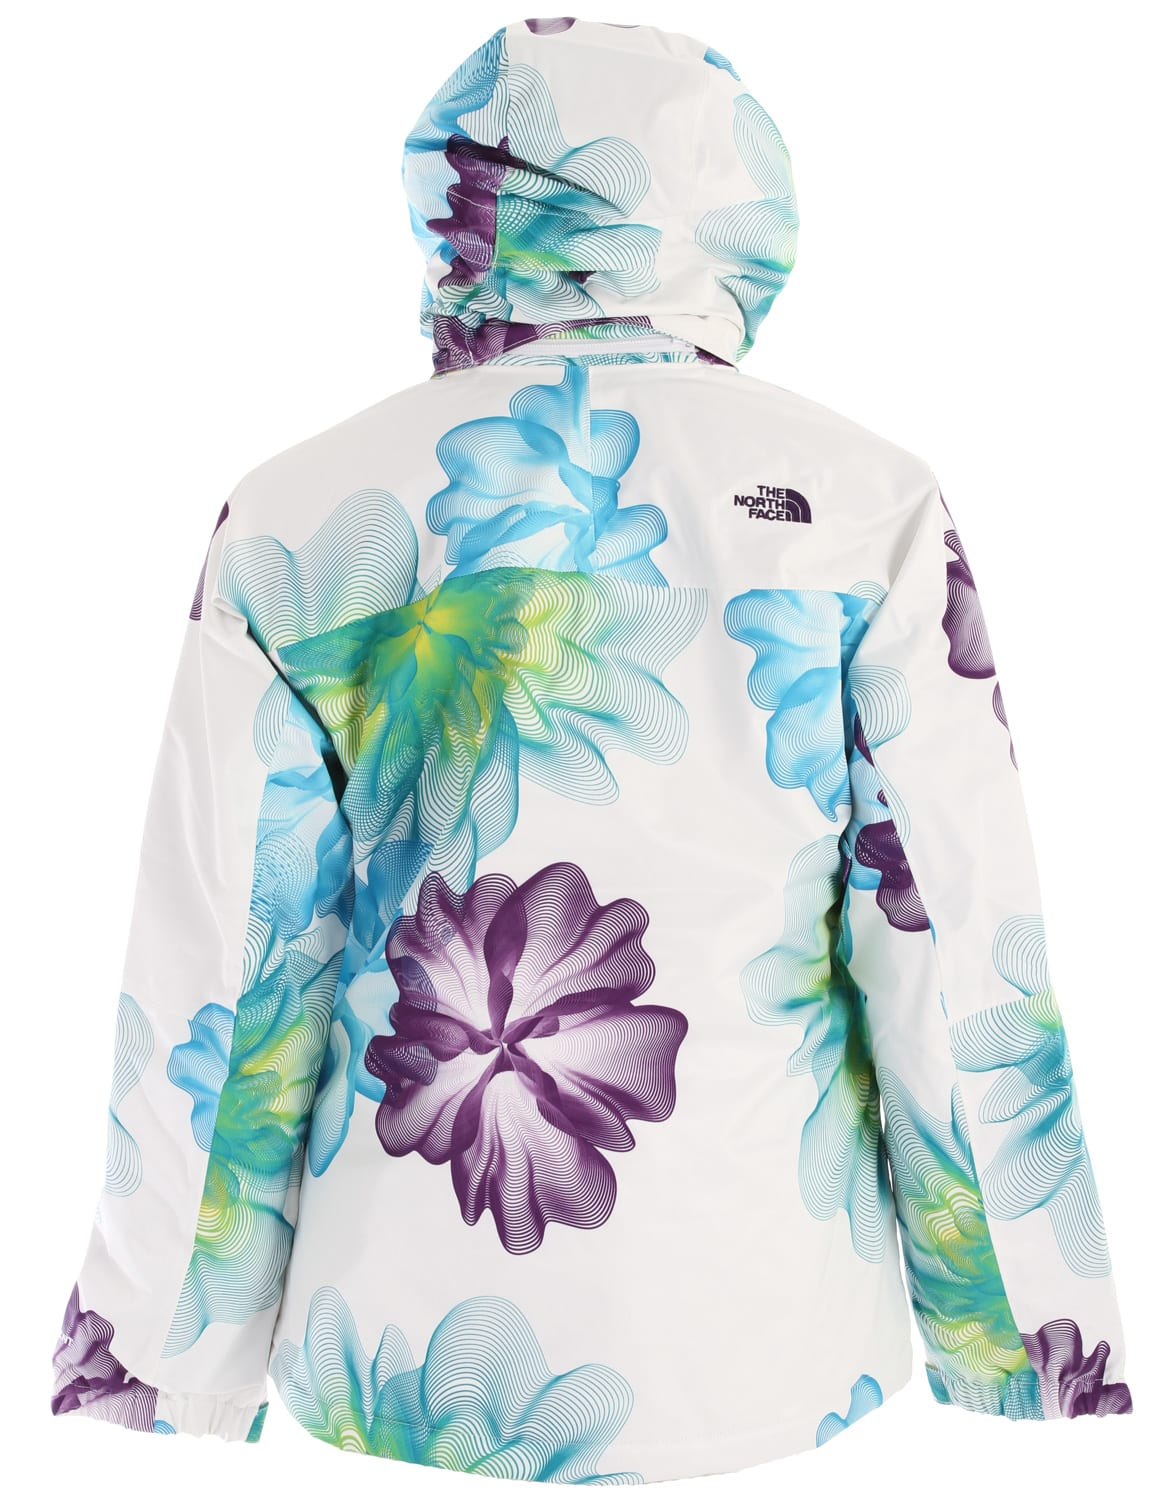 3516271475 The North Face Snow Cougar Print Ski Jacket - thumbnail 2